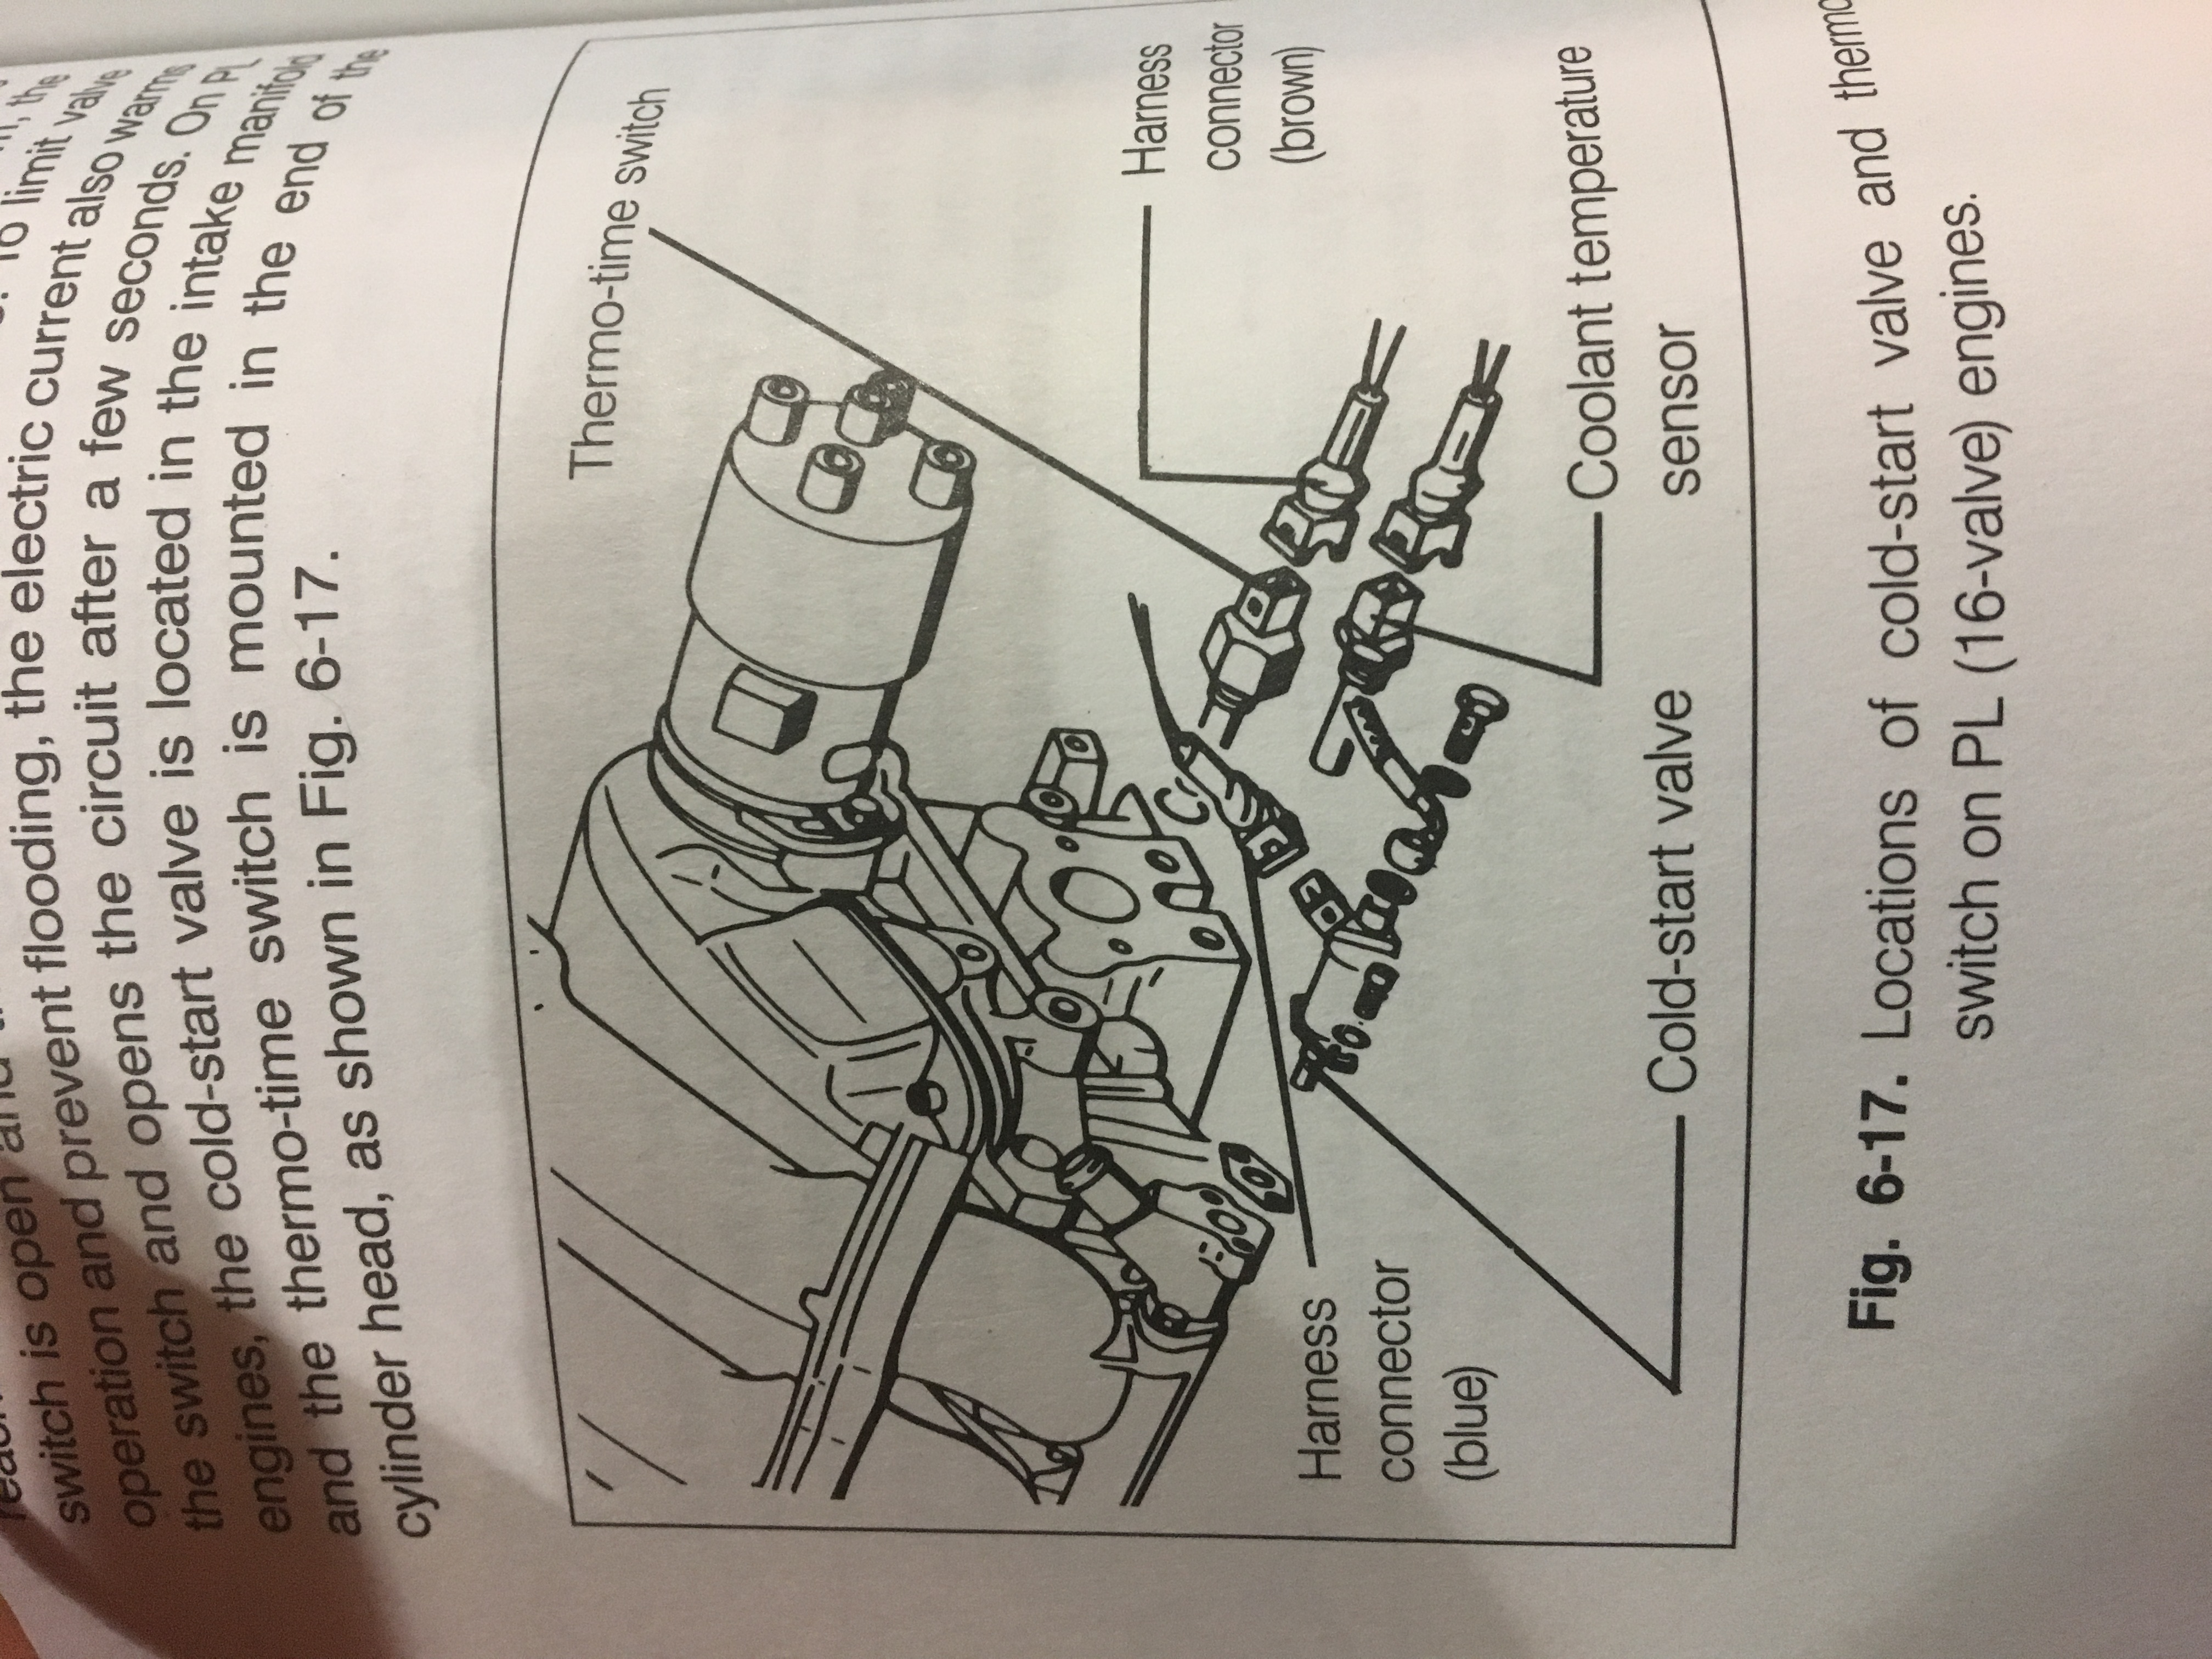 VWVortex com - what is the connection right below the cam plug